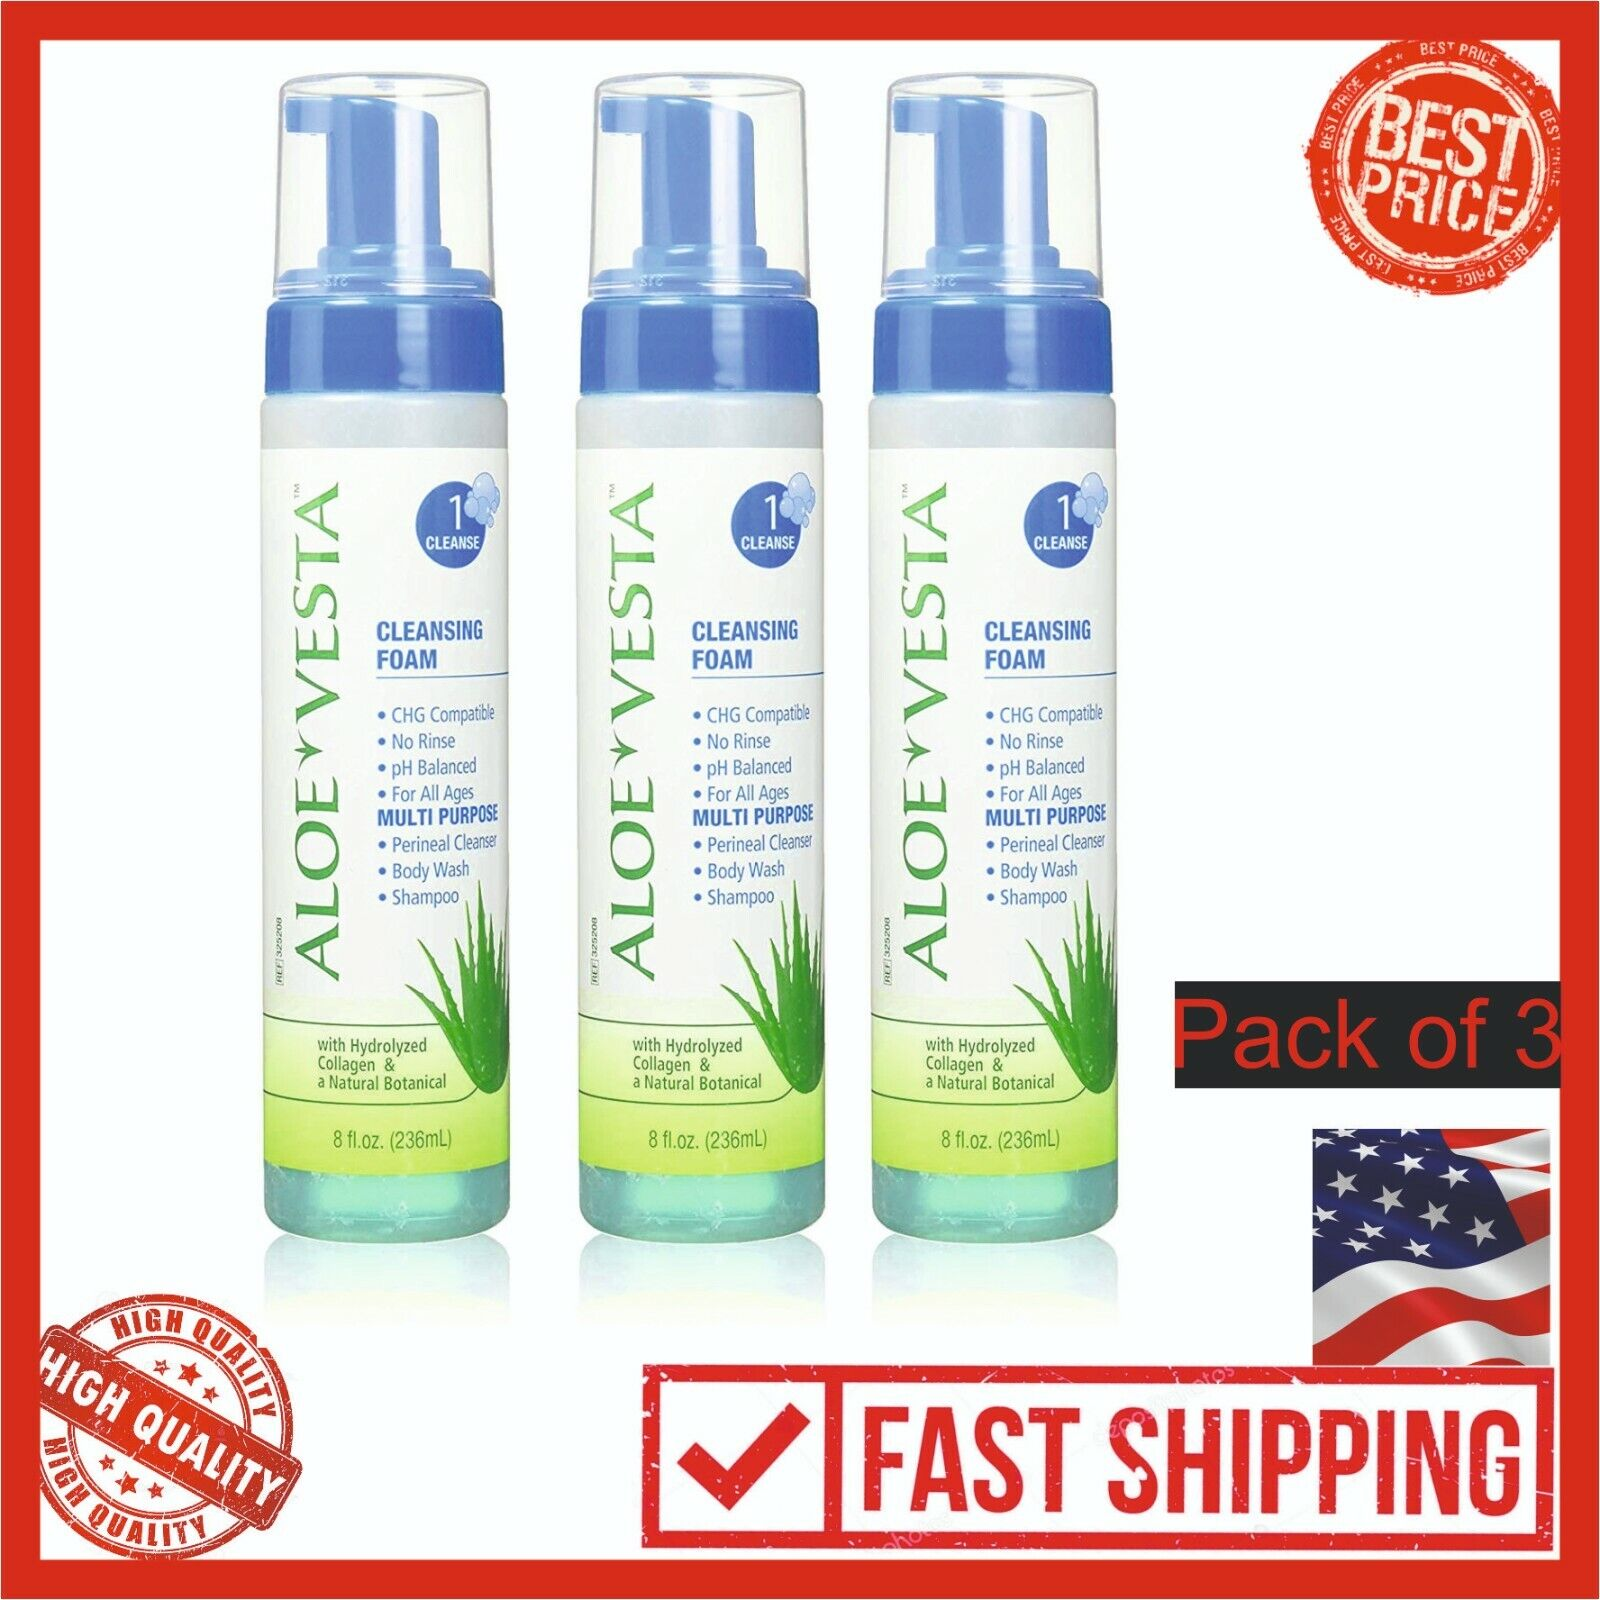 Aloe Vesta® Cleansing Foam, 8 oz Bottle